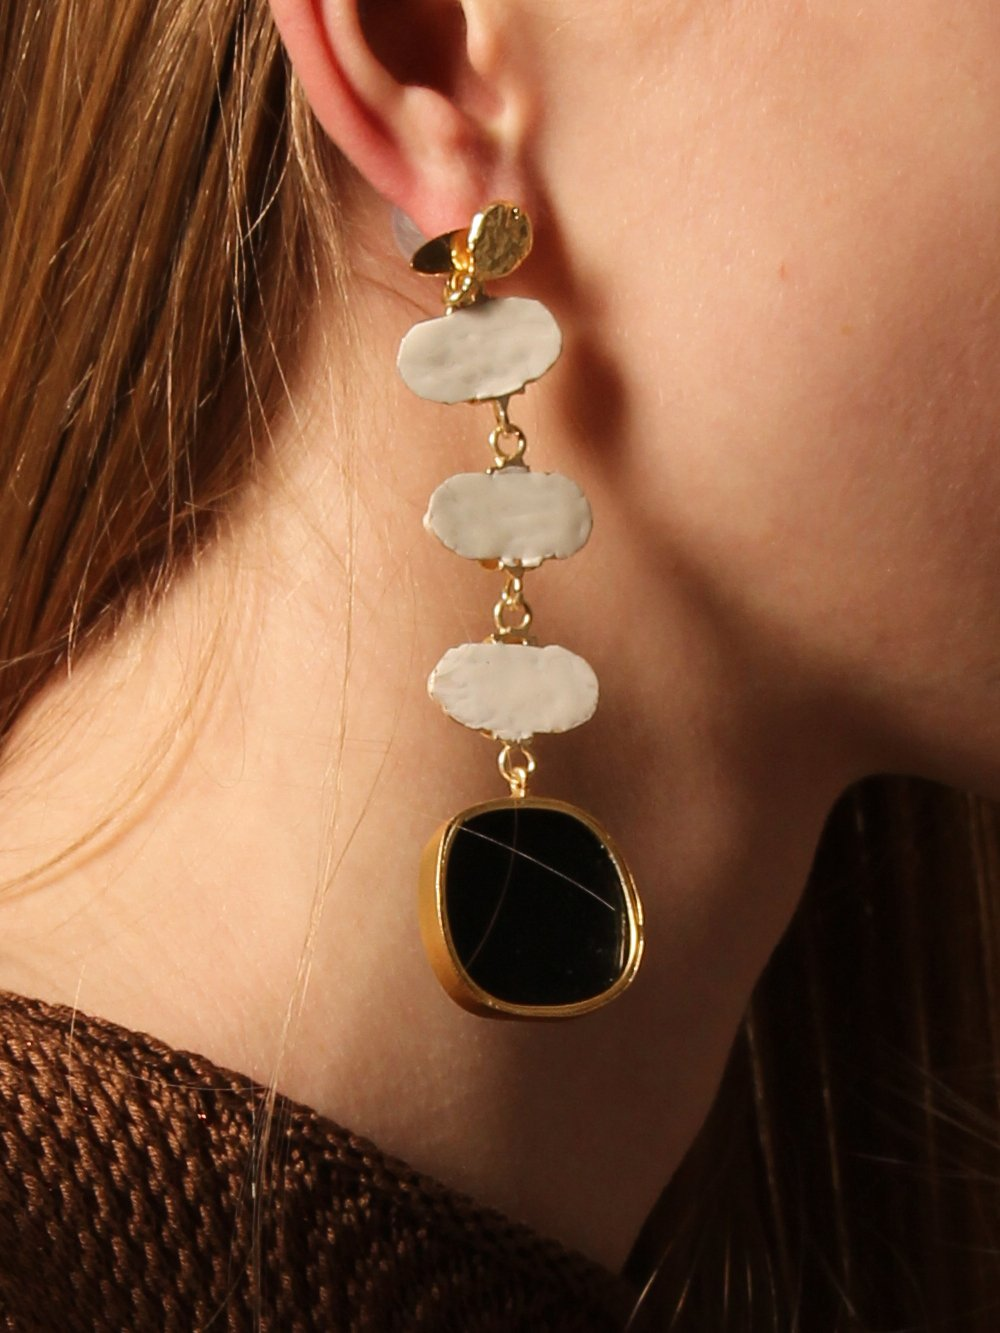 Eolian Earring (Reversible style) - White / Gold - Pair